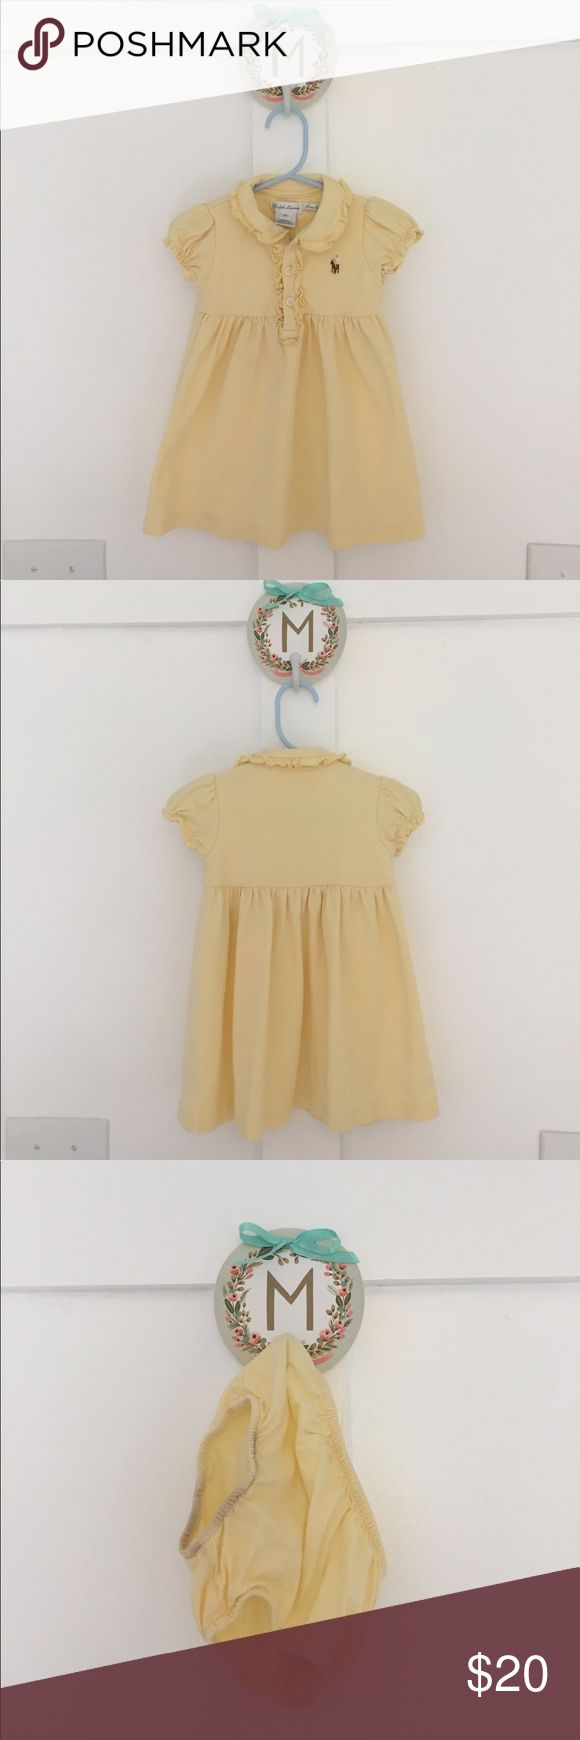 Ralph Lauren Baby Girls Pale Yellow Dress A classic Ralph Lauren Baby Girls yellow dress. It has a couple of barely noticeable stains (see close up pics). Comes with matching bloomers, that have a stain on the edge from bleeding laundry colors (ugh! Also pictured.) From Saks this season. Ralph Lauren Dresses Casual